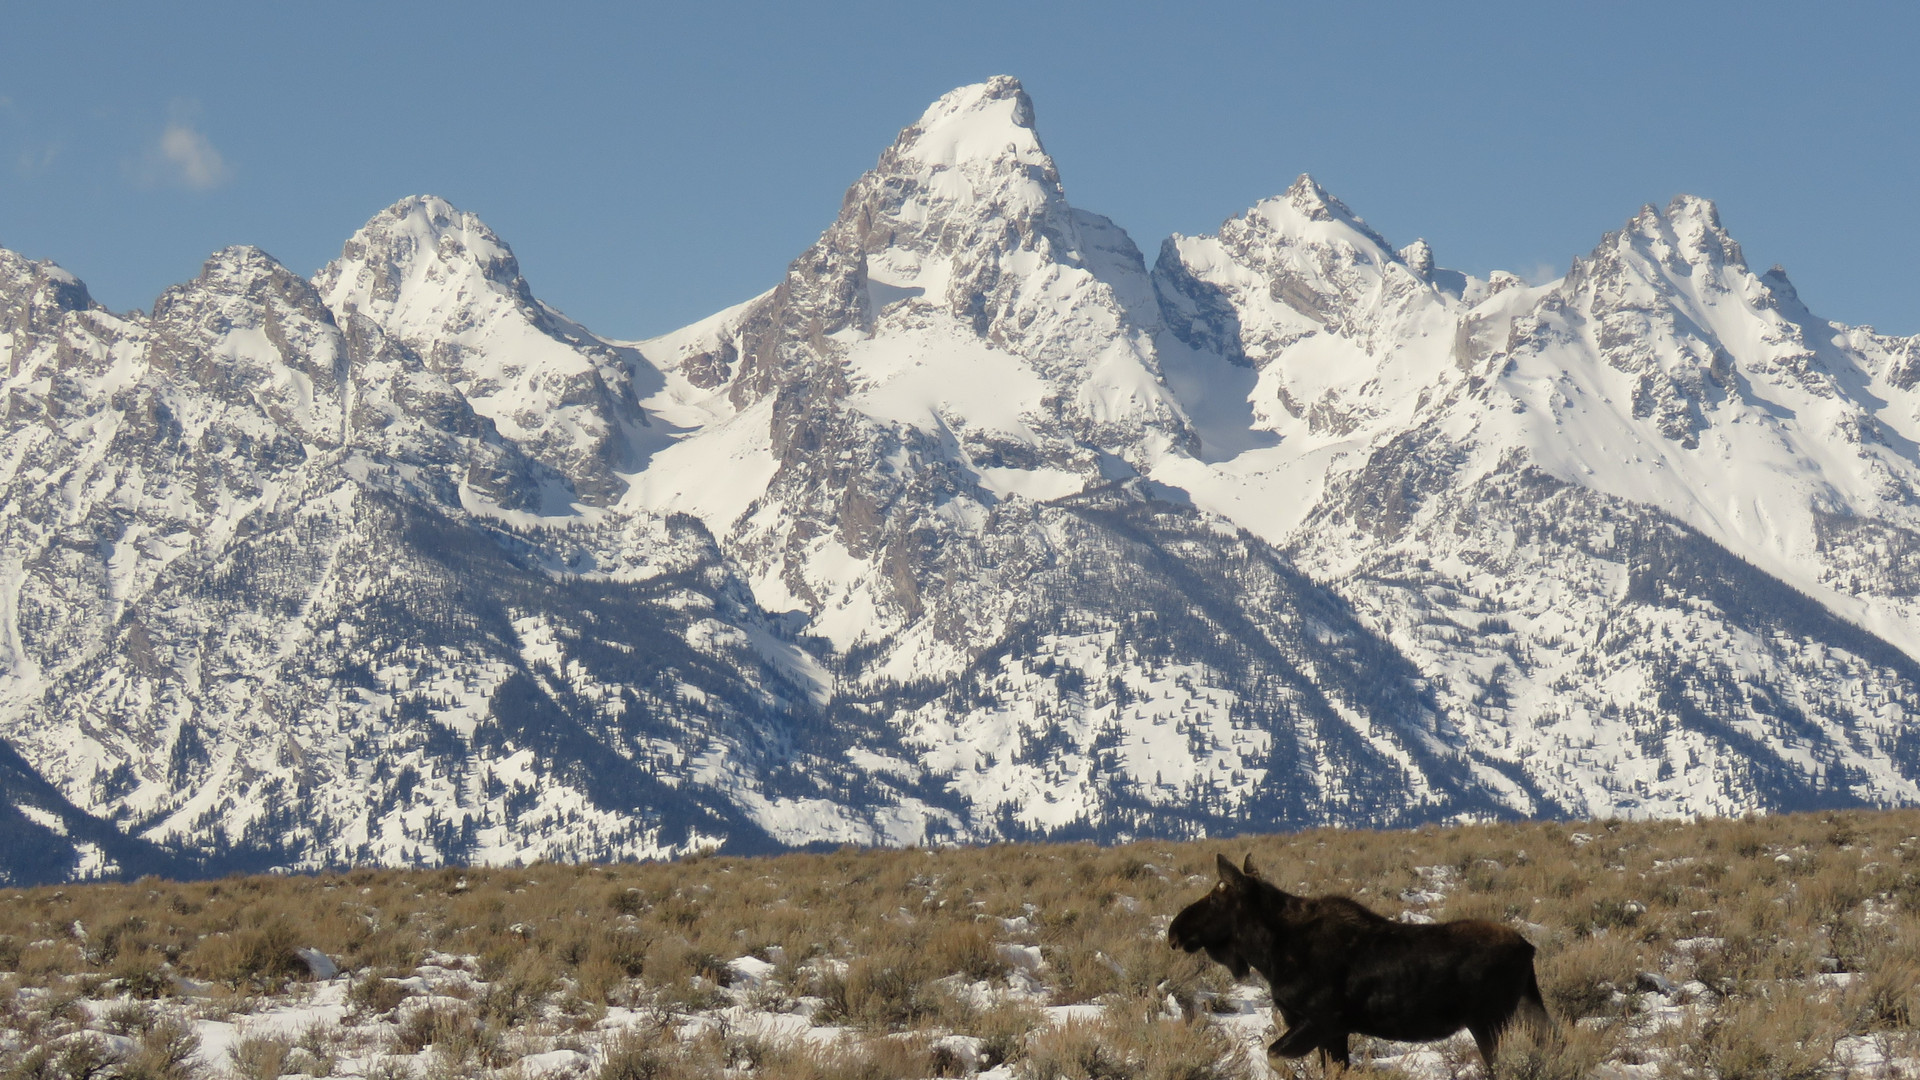 Jackson-hole-wildlife-tour-tetons-moose.